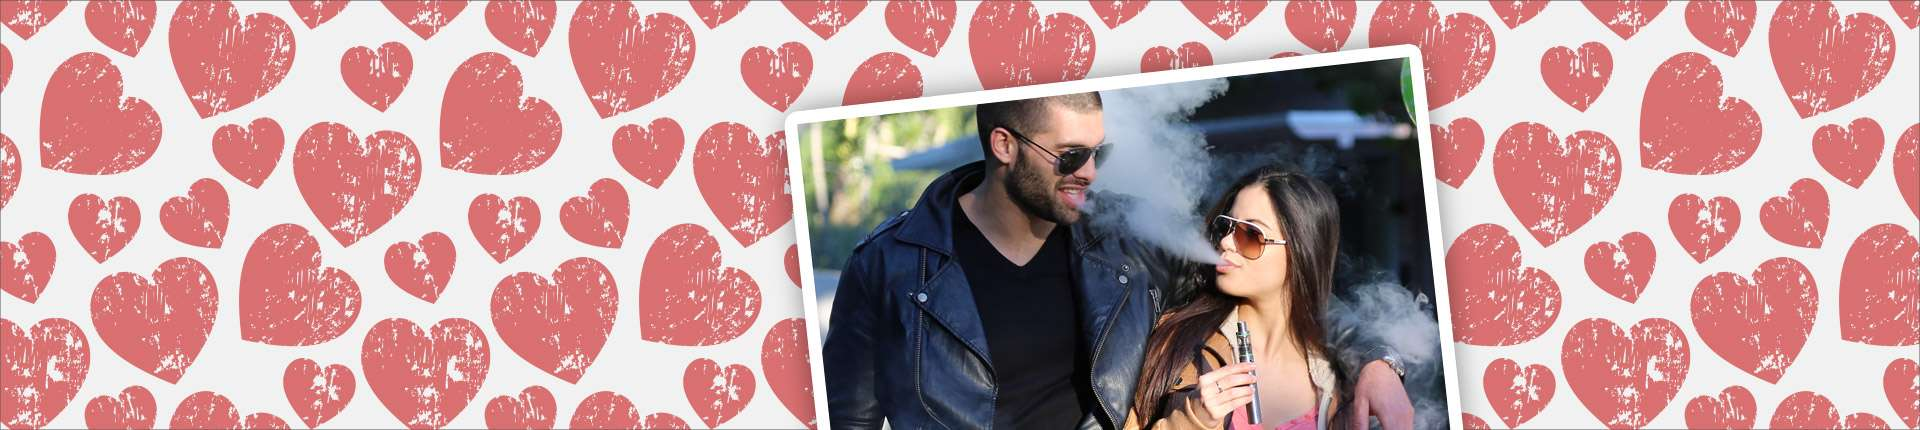 Valentine's Day Gift Ideas for Couples That Vape Together